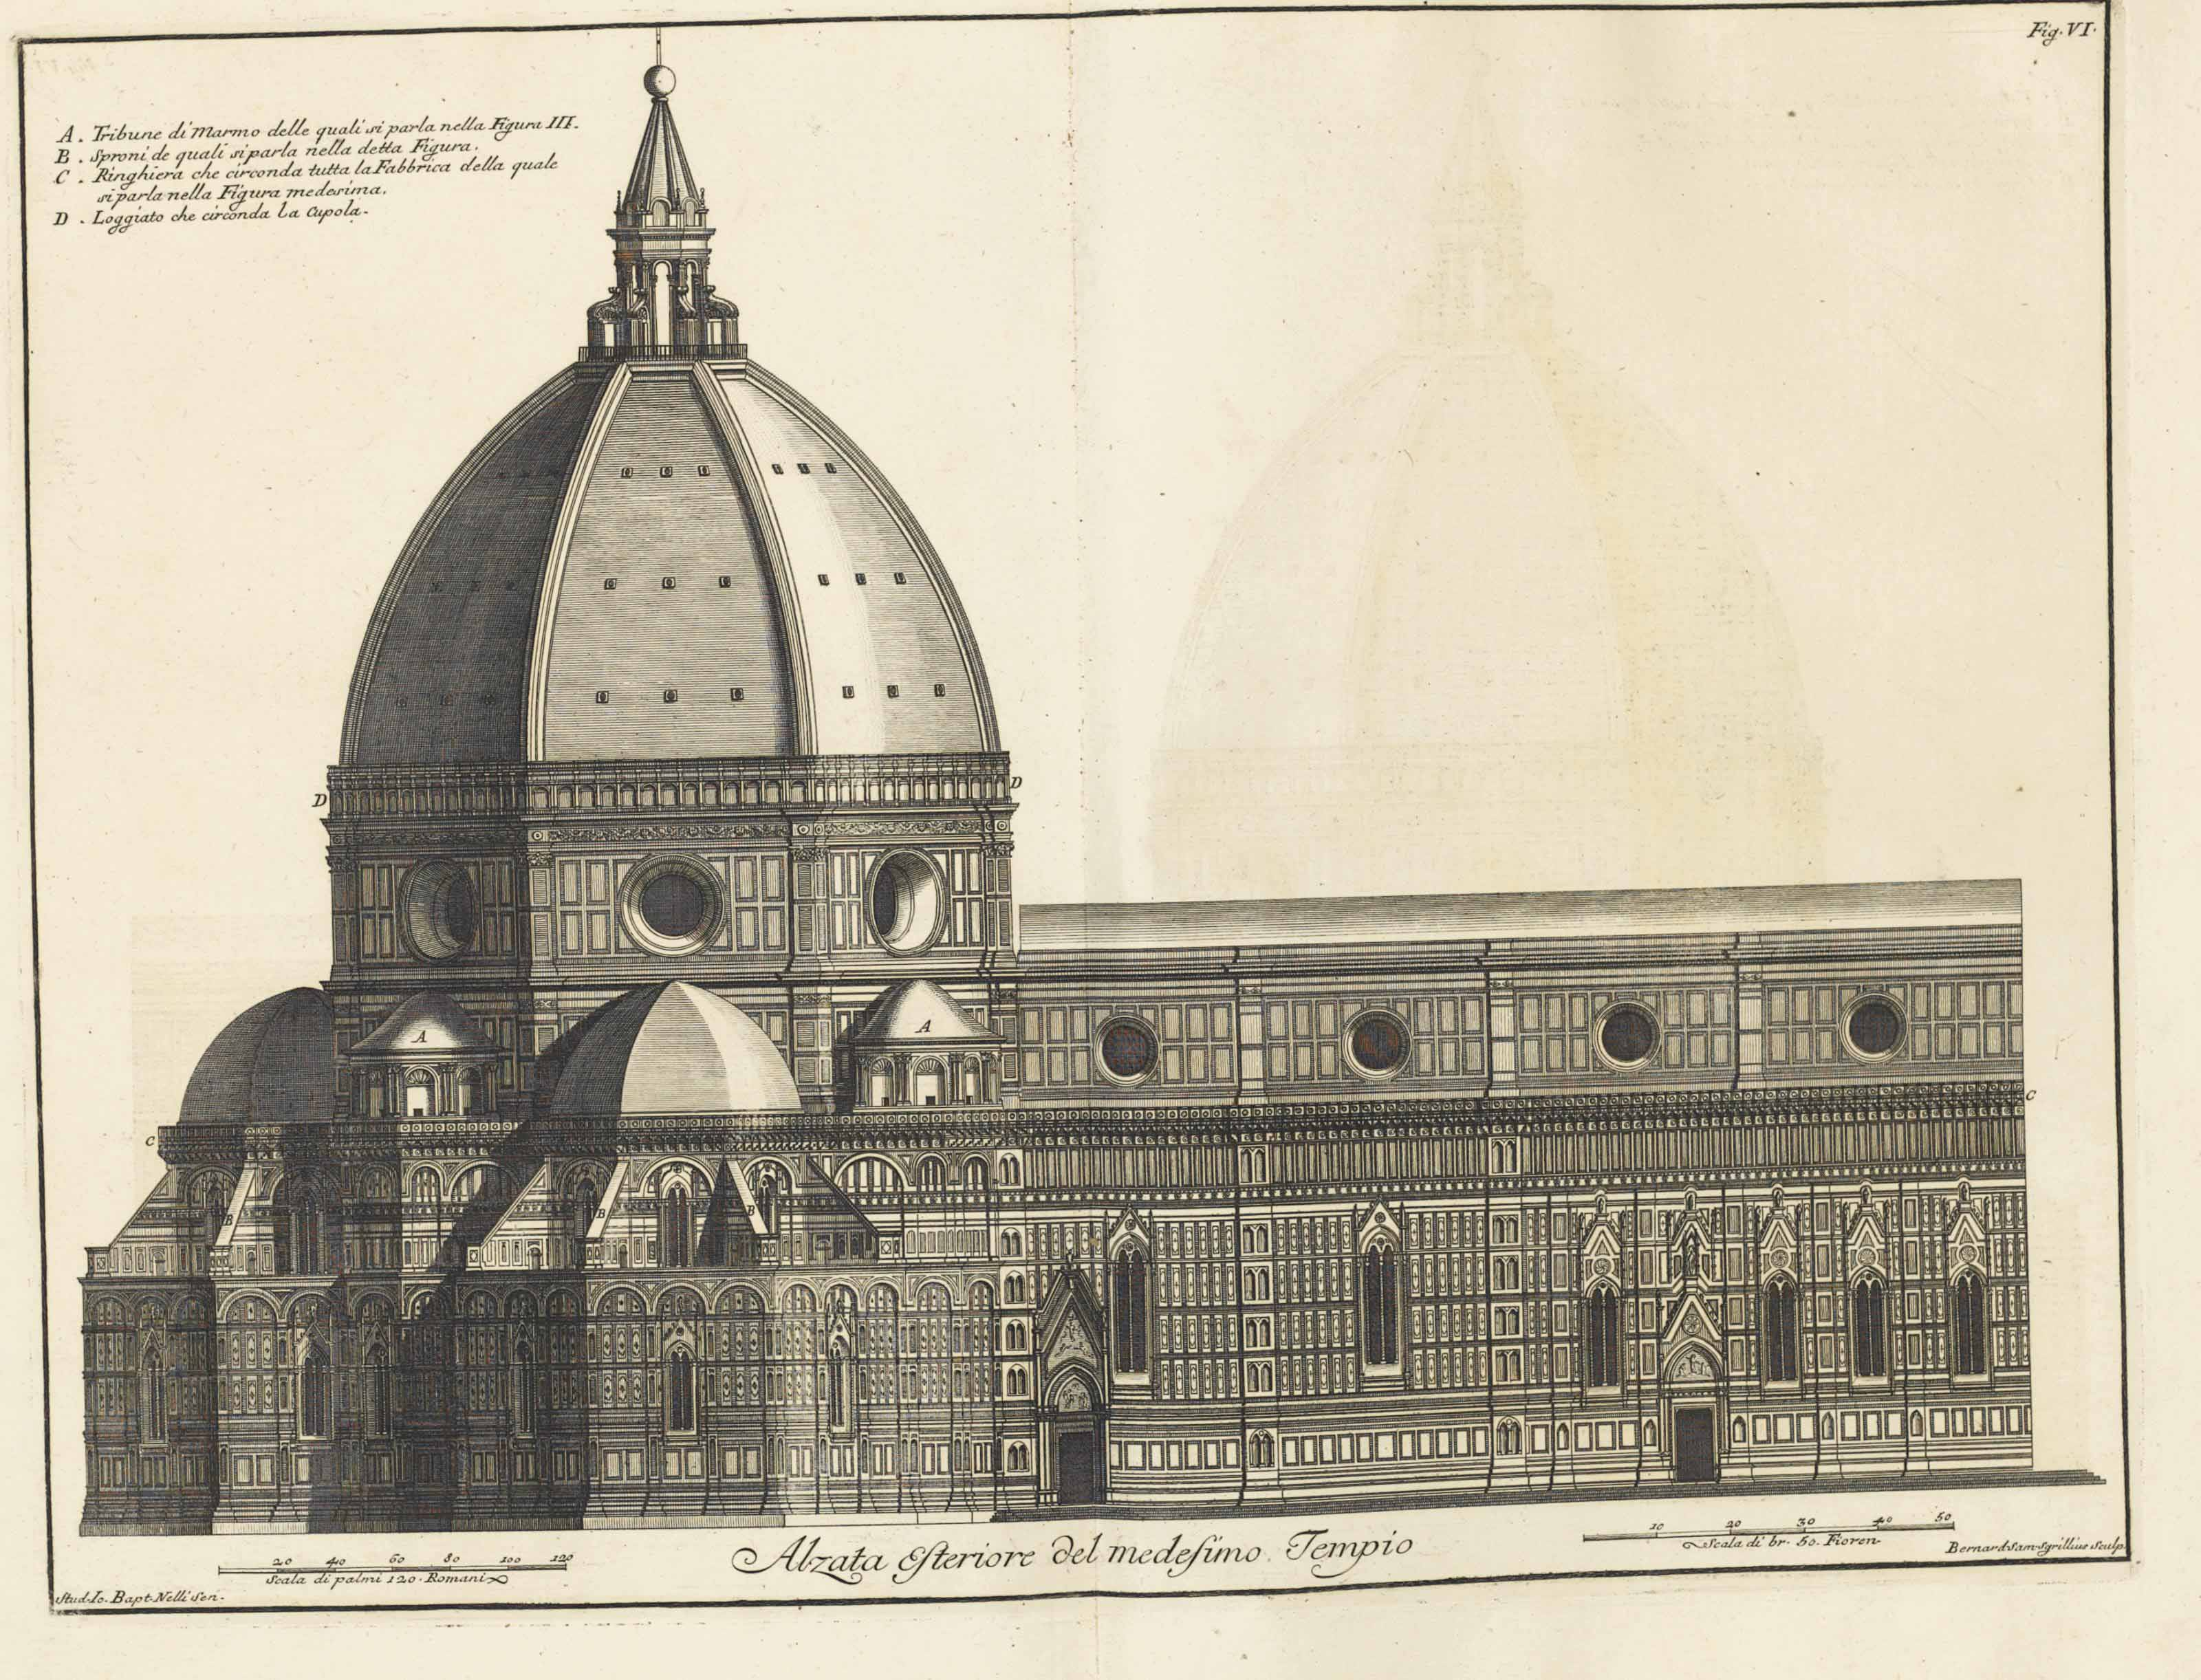 RUGGIERI, Ferdinando (c. 1691-1741). Scelta di architetture antiche e moderne della citta di Firenze. Florence: Jean Bouchard, 1755. 4 volumes, 2° (491 x 386 mm). With the small cancel slip pasted in the dedication correcting the publisher's name. Titles with etched vignettes, 4 additional engraved titles, engraved folding plan of Florence, and 282 engraved plates, some of these double-page.  (Volume 4 part 1 lacking additional engraved title but probably as issued, one plate in vol. 4 with the margin renewed at an early date, occasional marginal dampstain, some soiling to deckle edges.) Contemporary vellum, gilt spine labels (some soiling and staining, labels worn, extremities rubbed, front hinge of vol. 1 split). Provenance: The Lord Holland, later Earls of Ilchester (Holland House engraved bookplate).